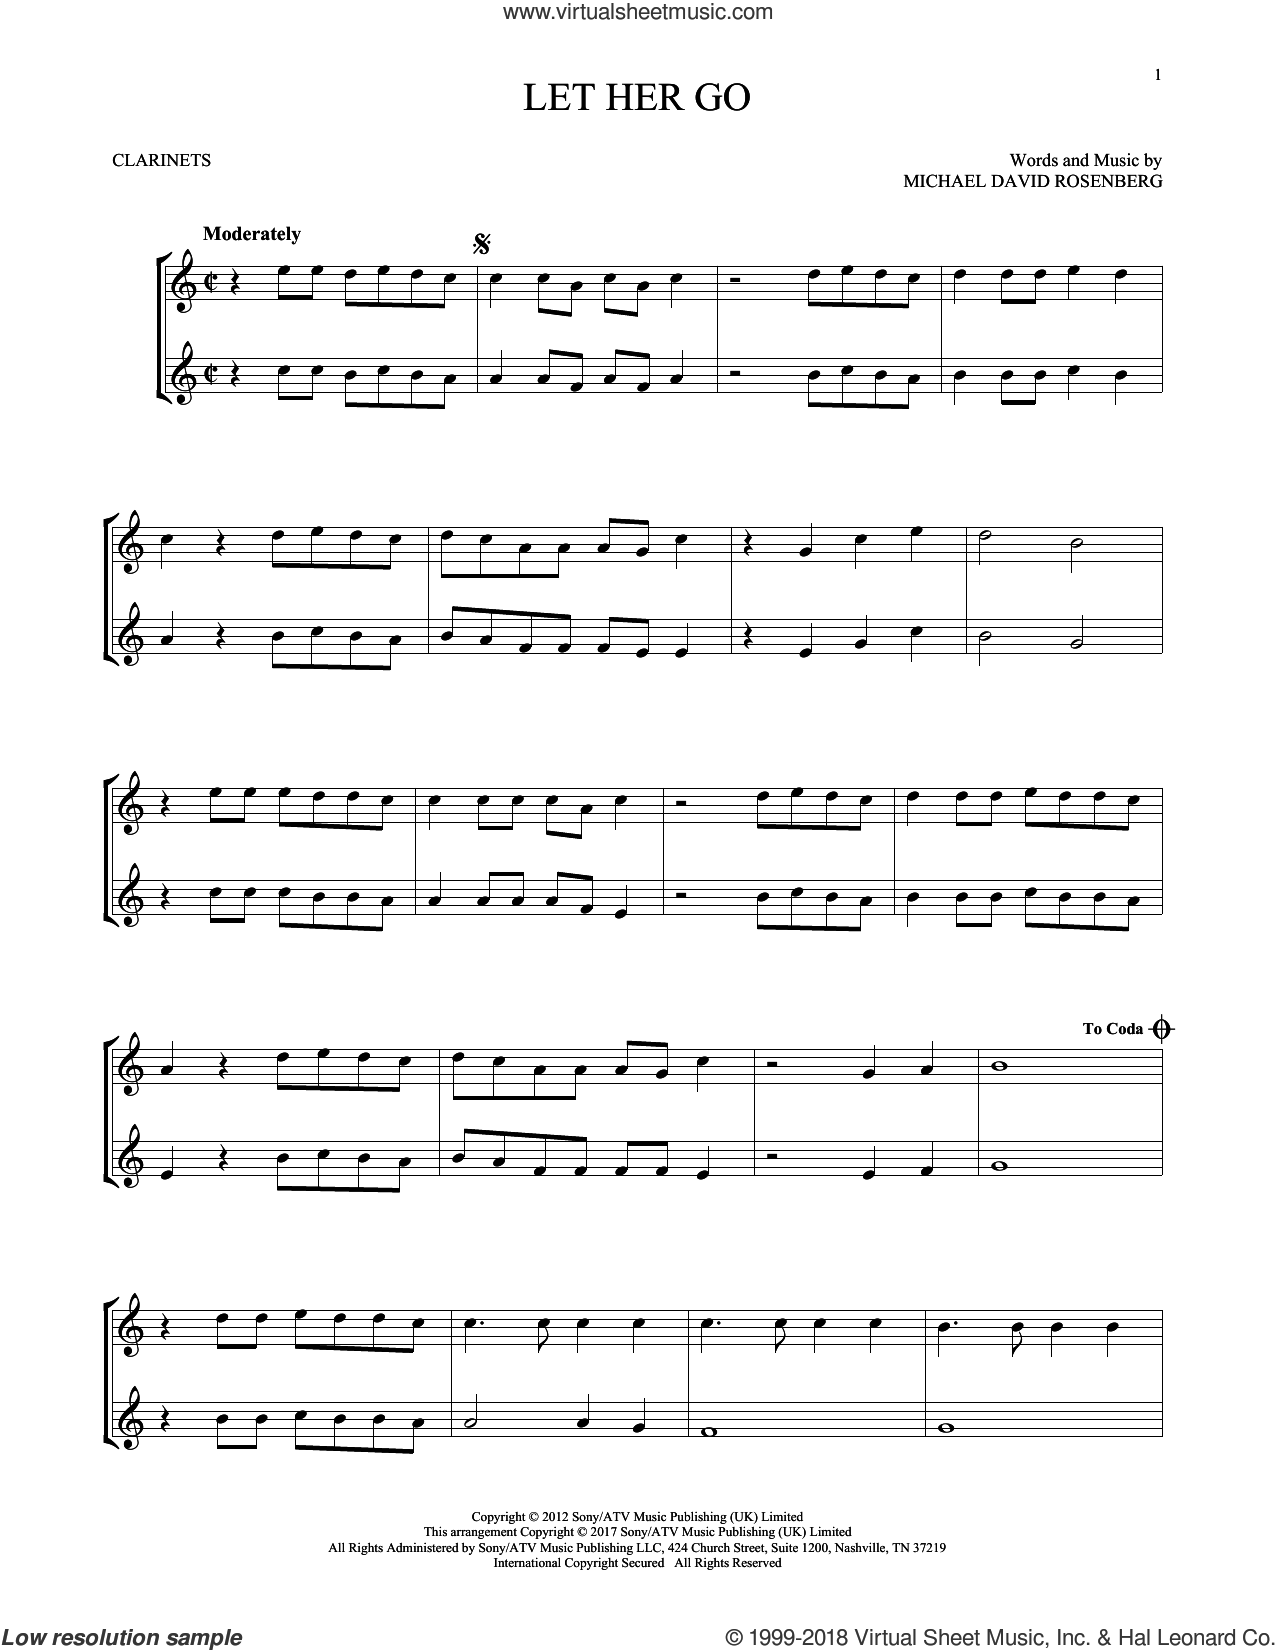 Let Her Go sheet music for two clarinets (duets) by Passenger and Michael David Rosenberg, intermediate skill level